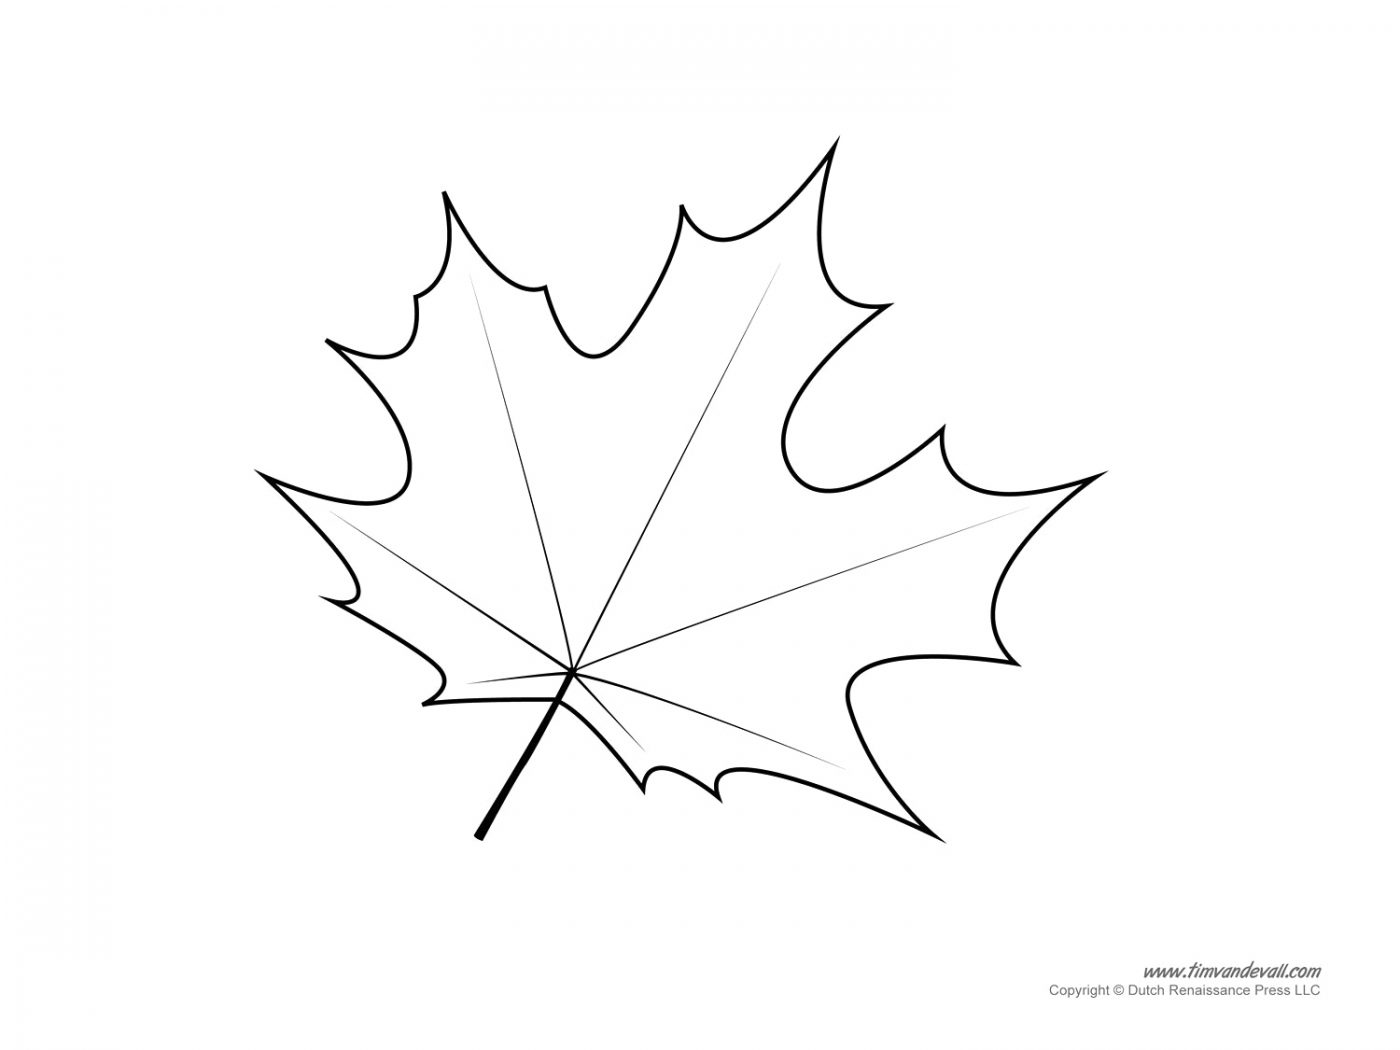 1400x1050 Maple Leaf Coloring Pages Easy For Toodler Free Leaves Page